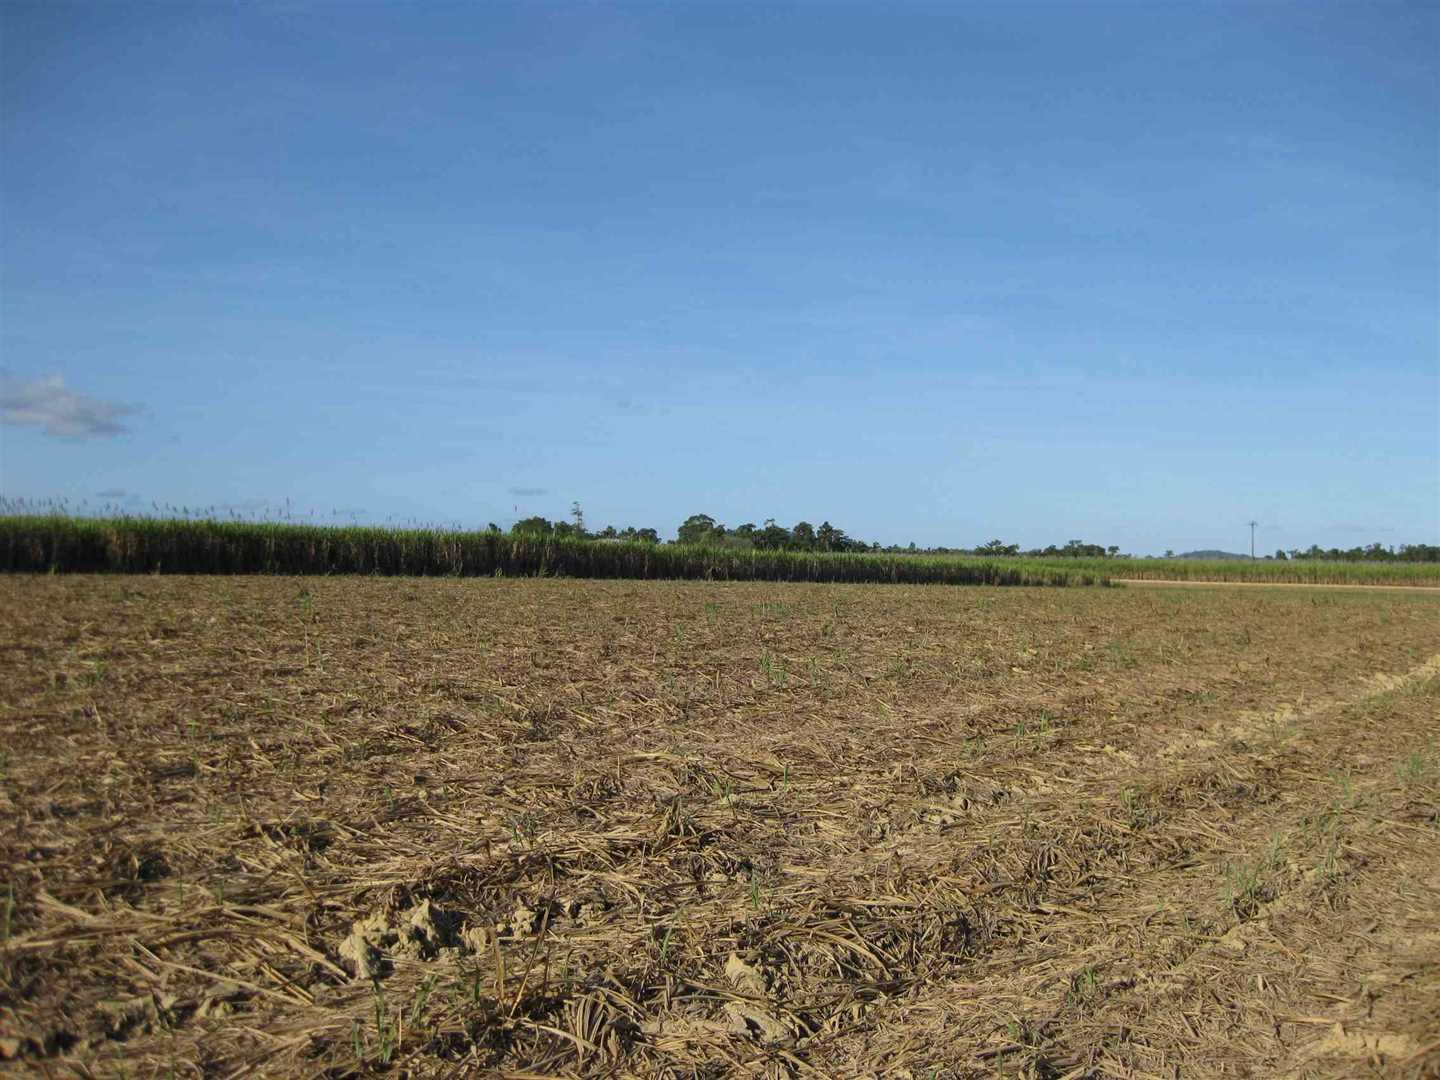 View of part of property showing some harvested cane and distant cane